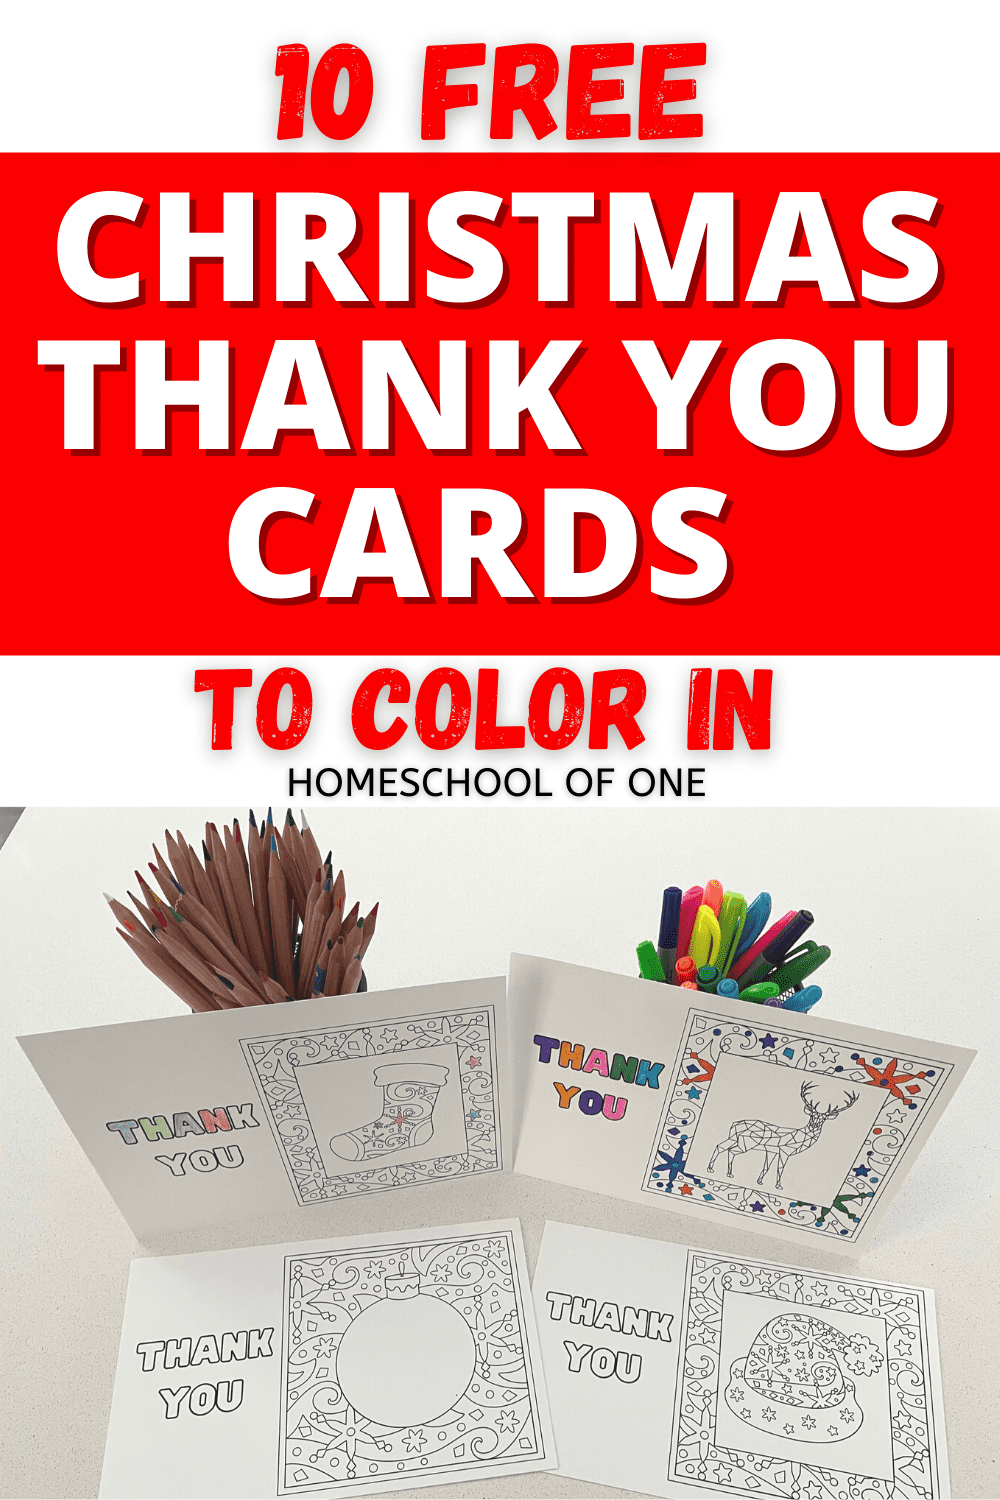 10 Free Christmas Thank You cards that you can download for free and then color in. #coloring #thankyoucards #christmas #gratitude